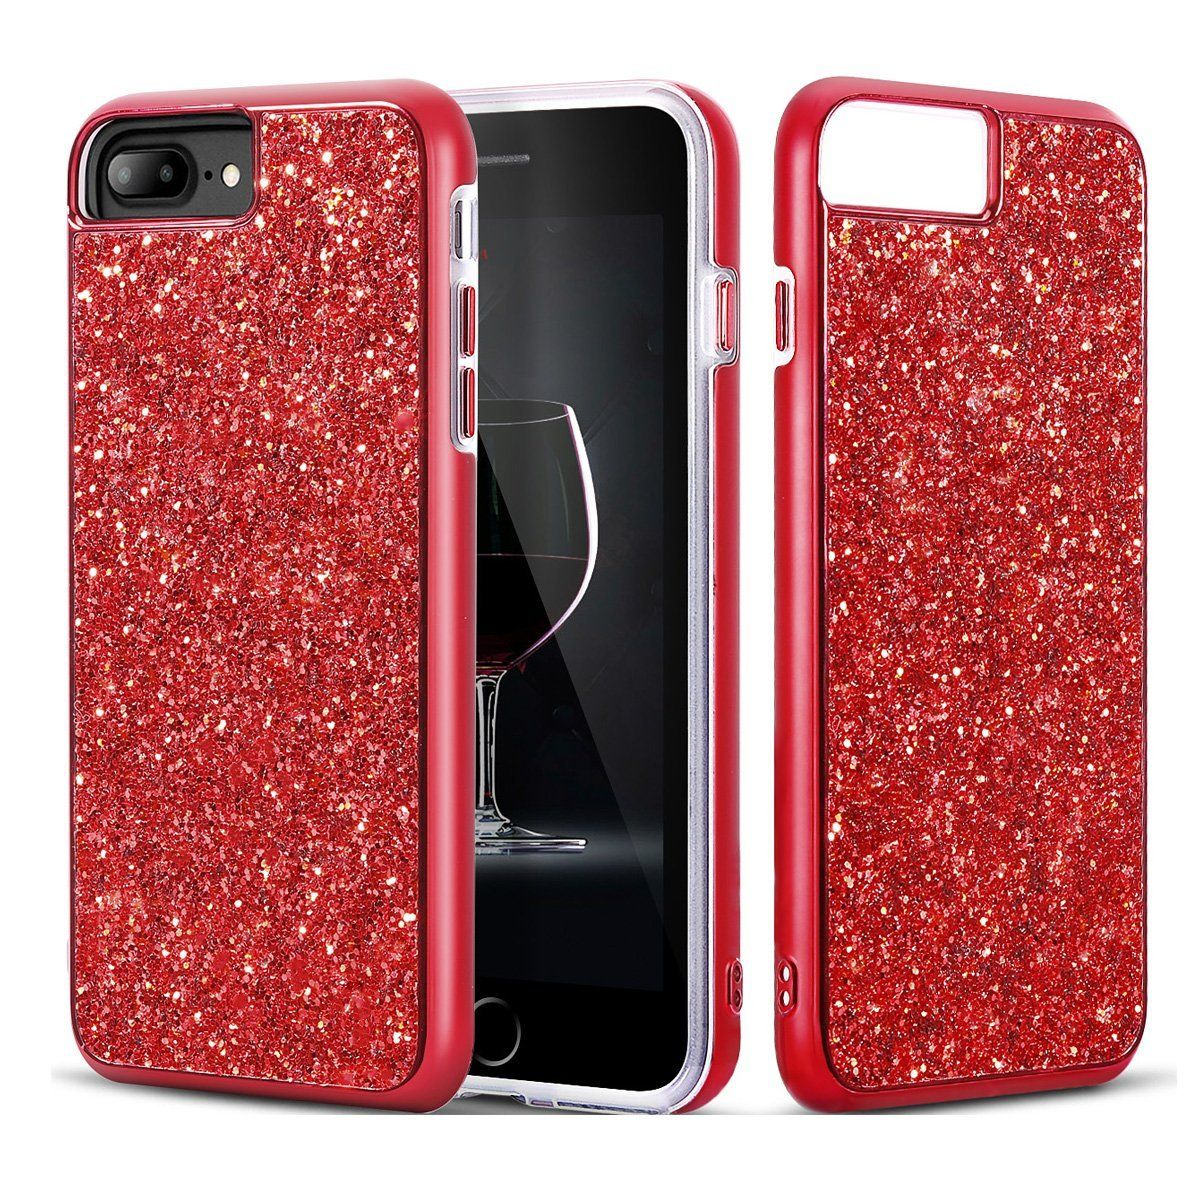 iphone 7 plus shockproof case red